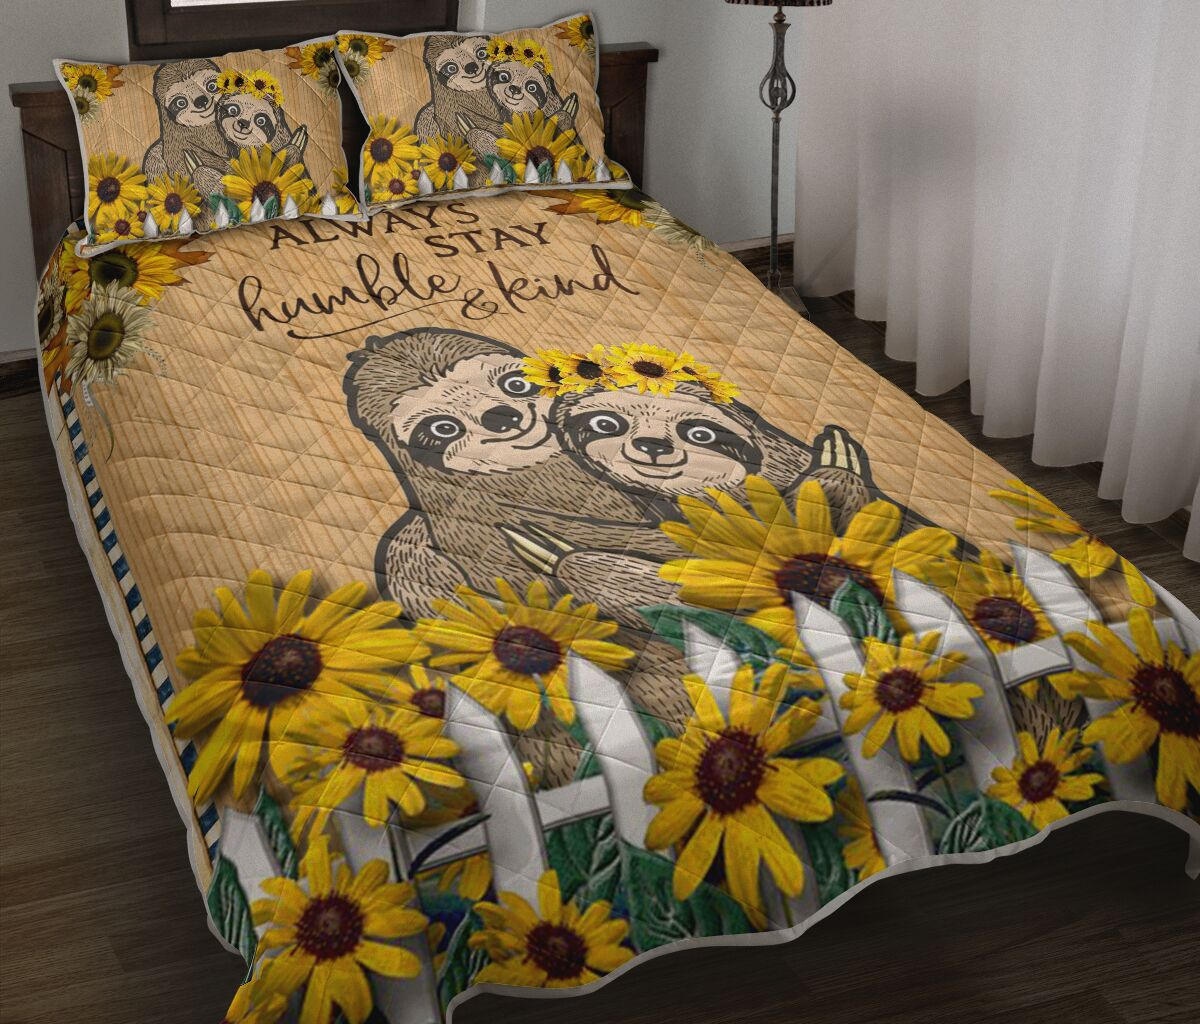 [Top-selling] sunflower and sloth always stay humble and kind full printing bedding set - maria